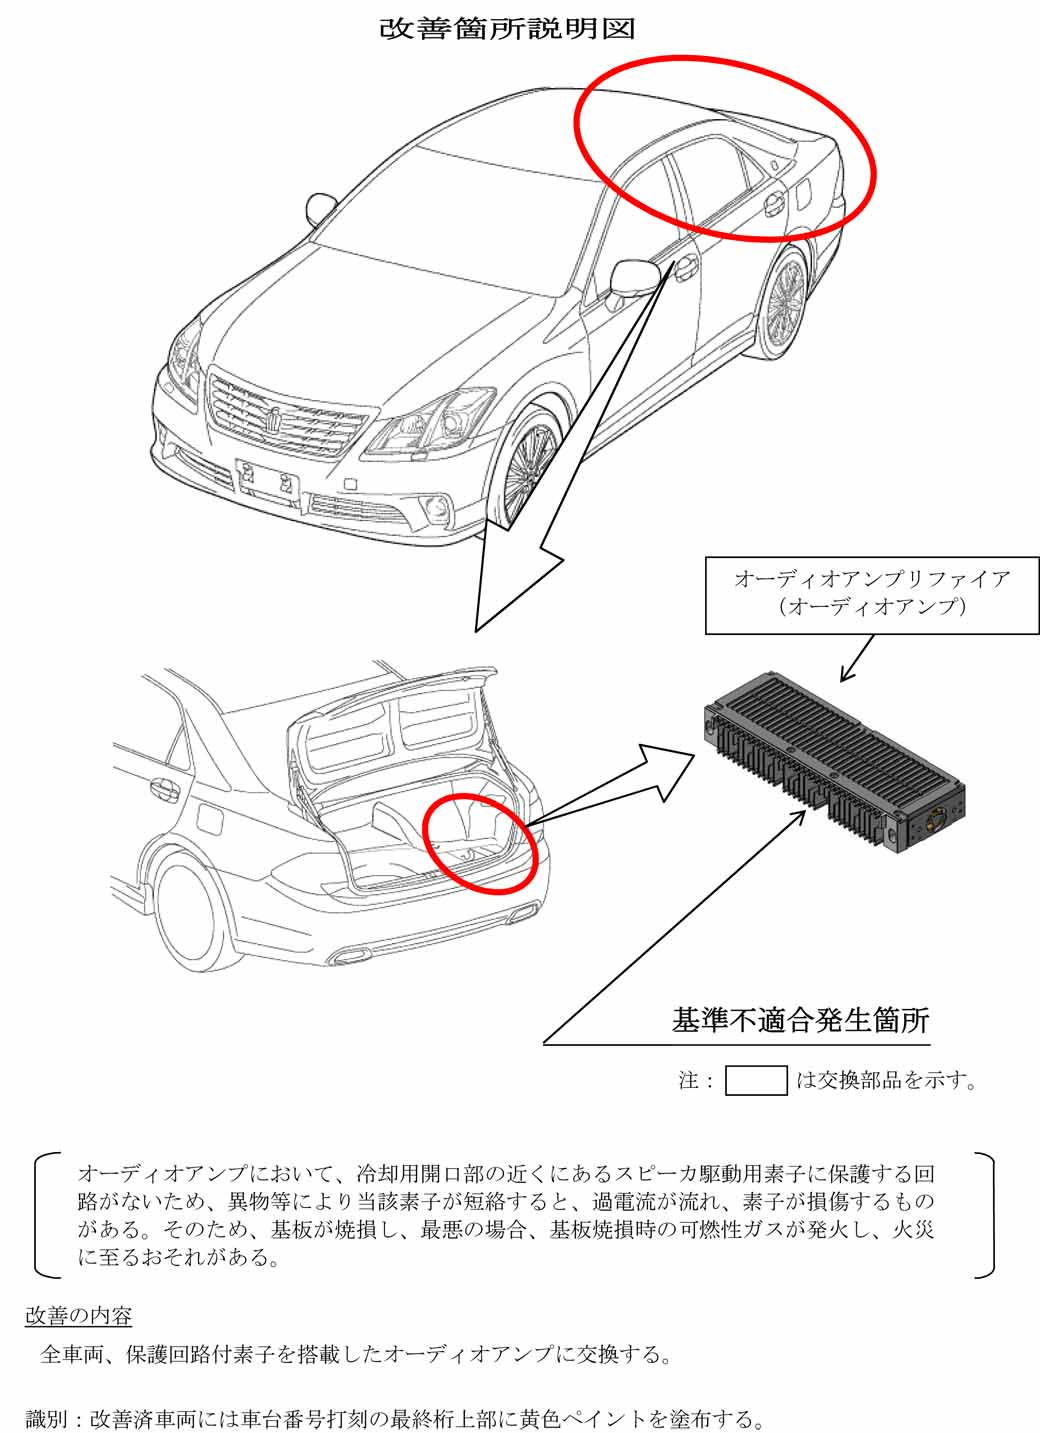 toyota-notification-of-the-crown-other-recall20160413-6